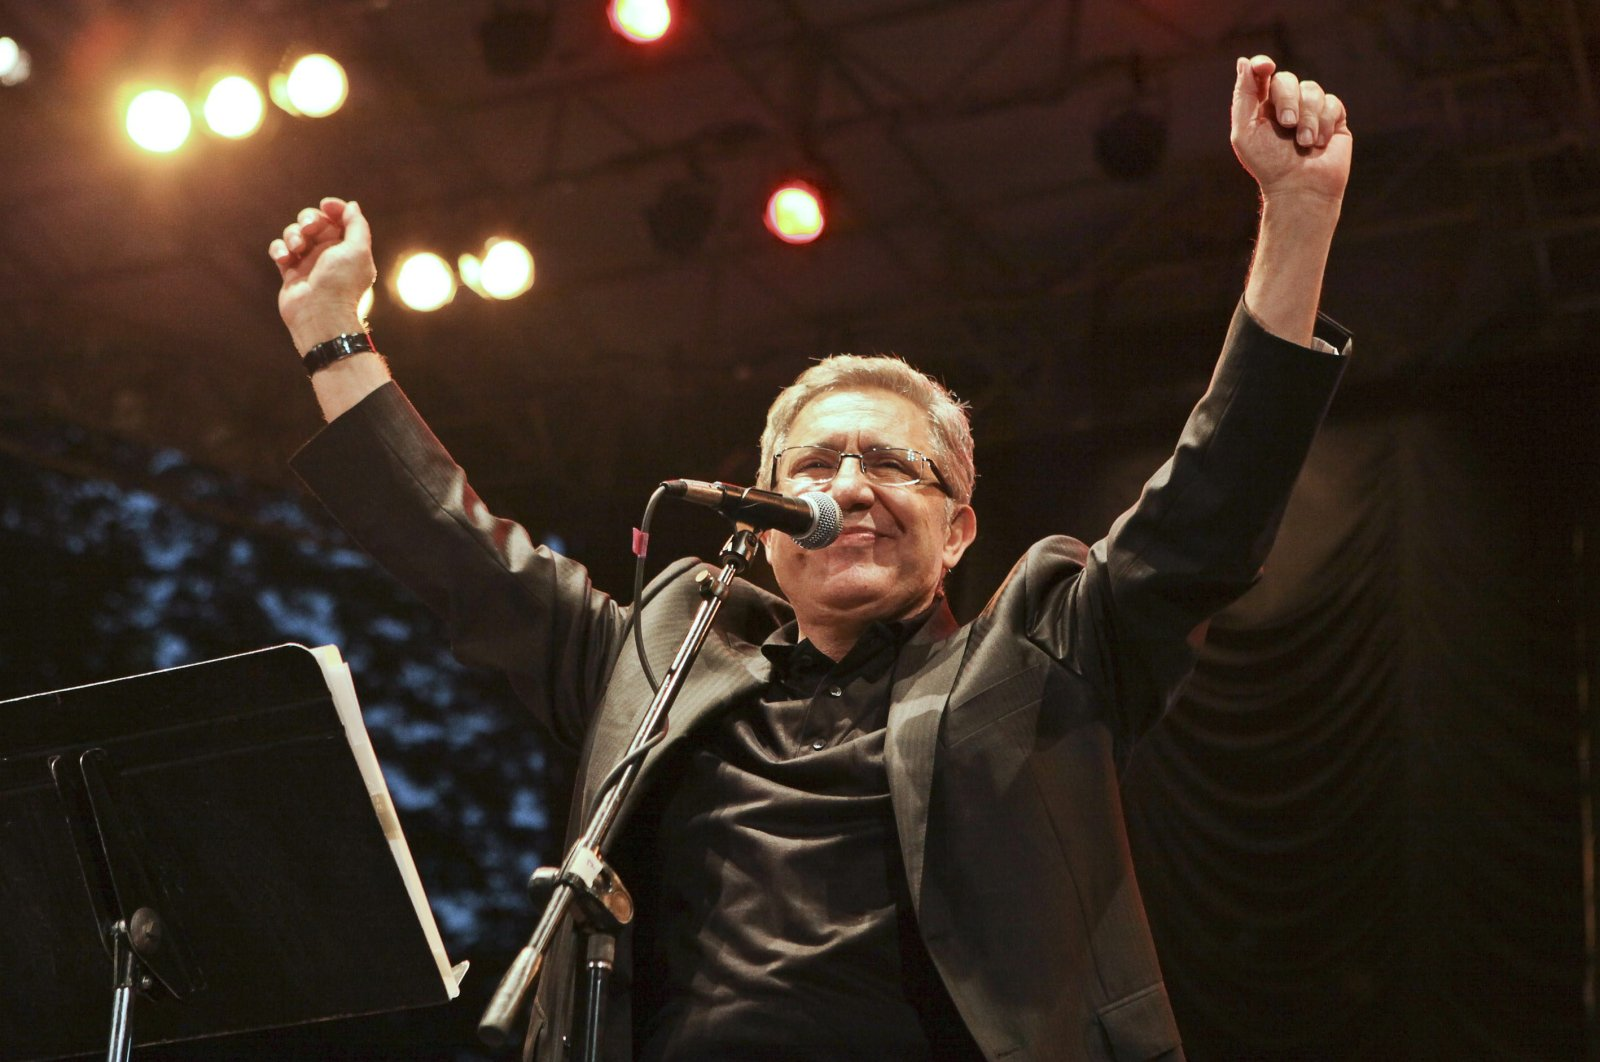 This undated photo shows Zülfü Livaneli performing at Central Park, New York, in 2011. (AA Photo)